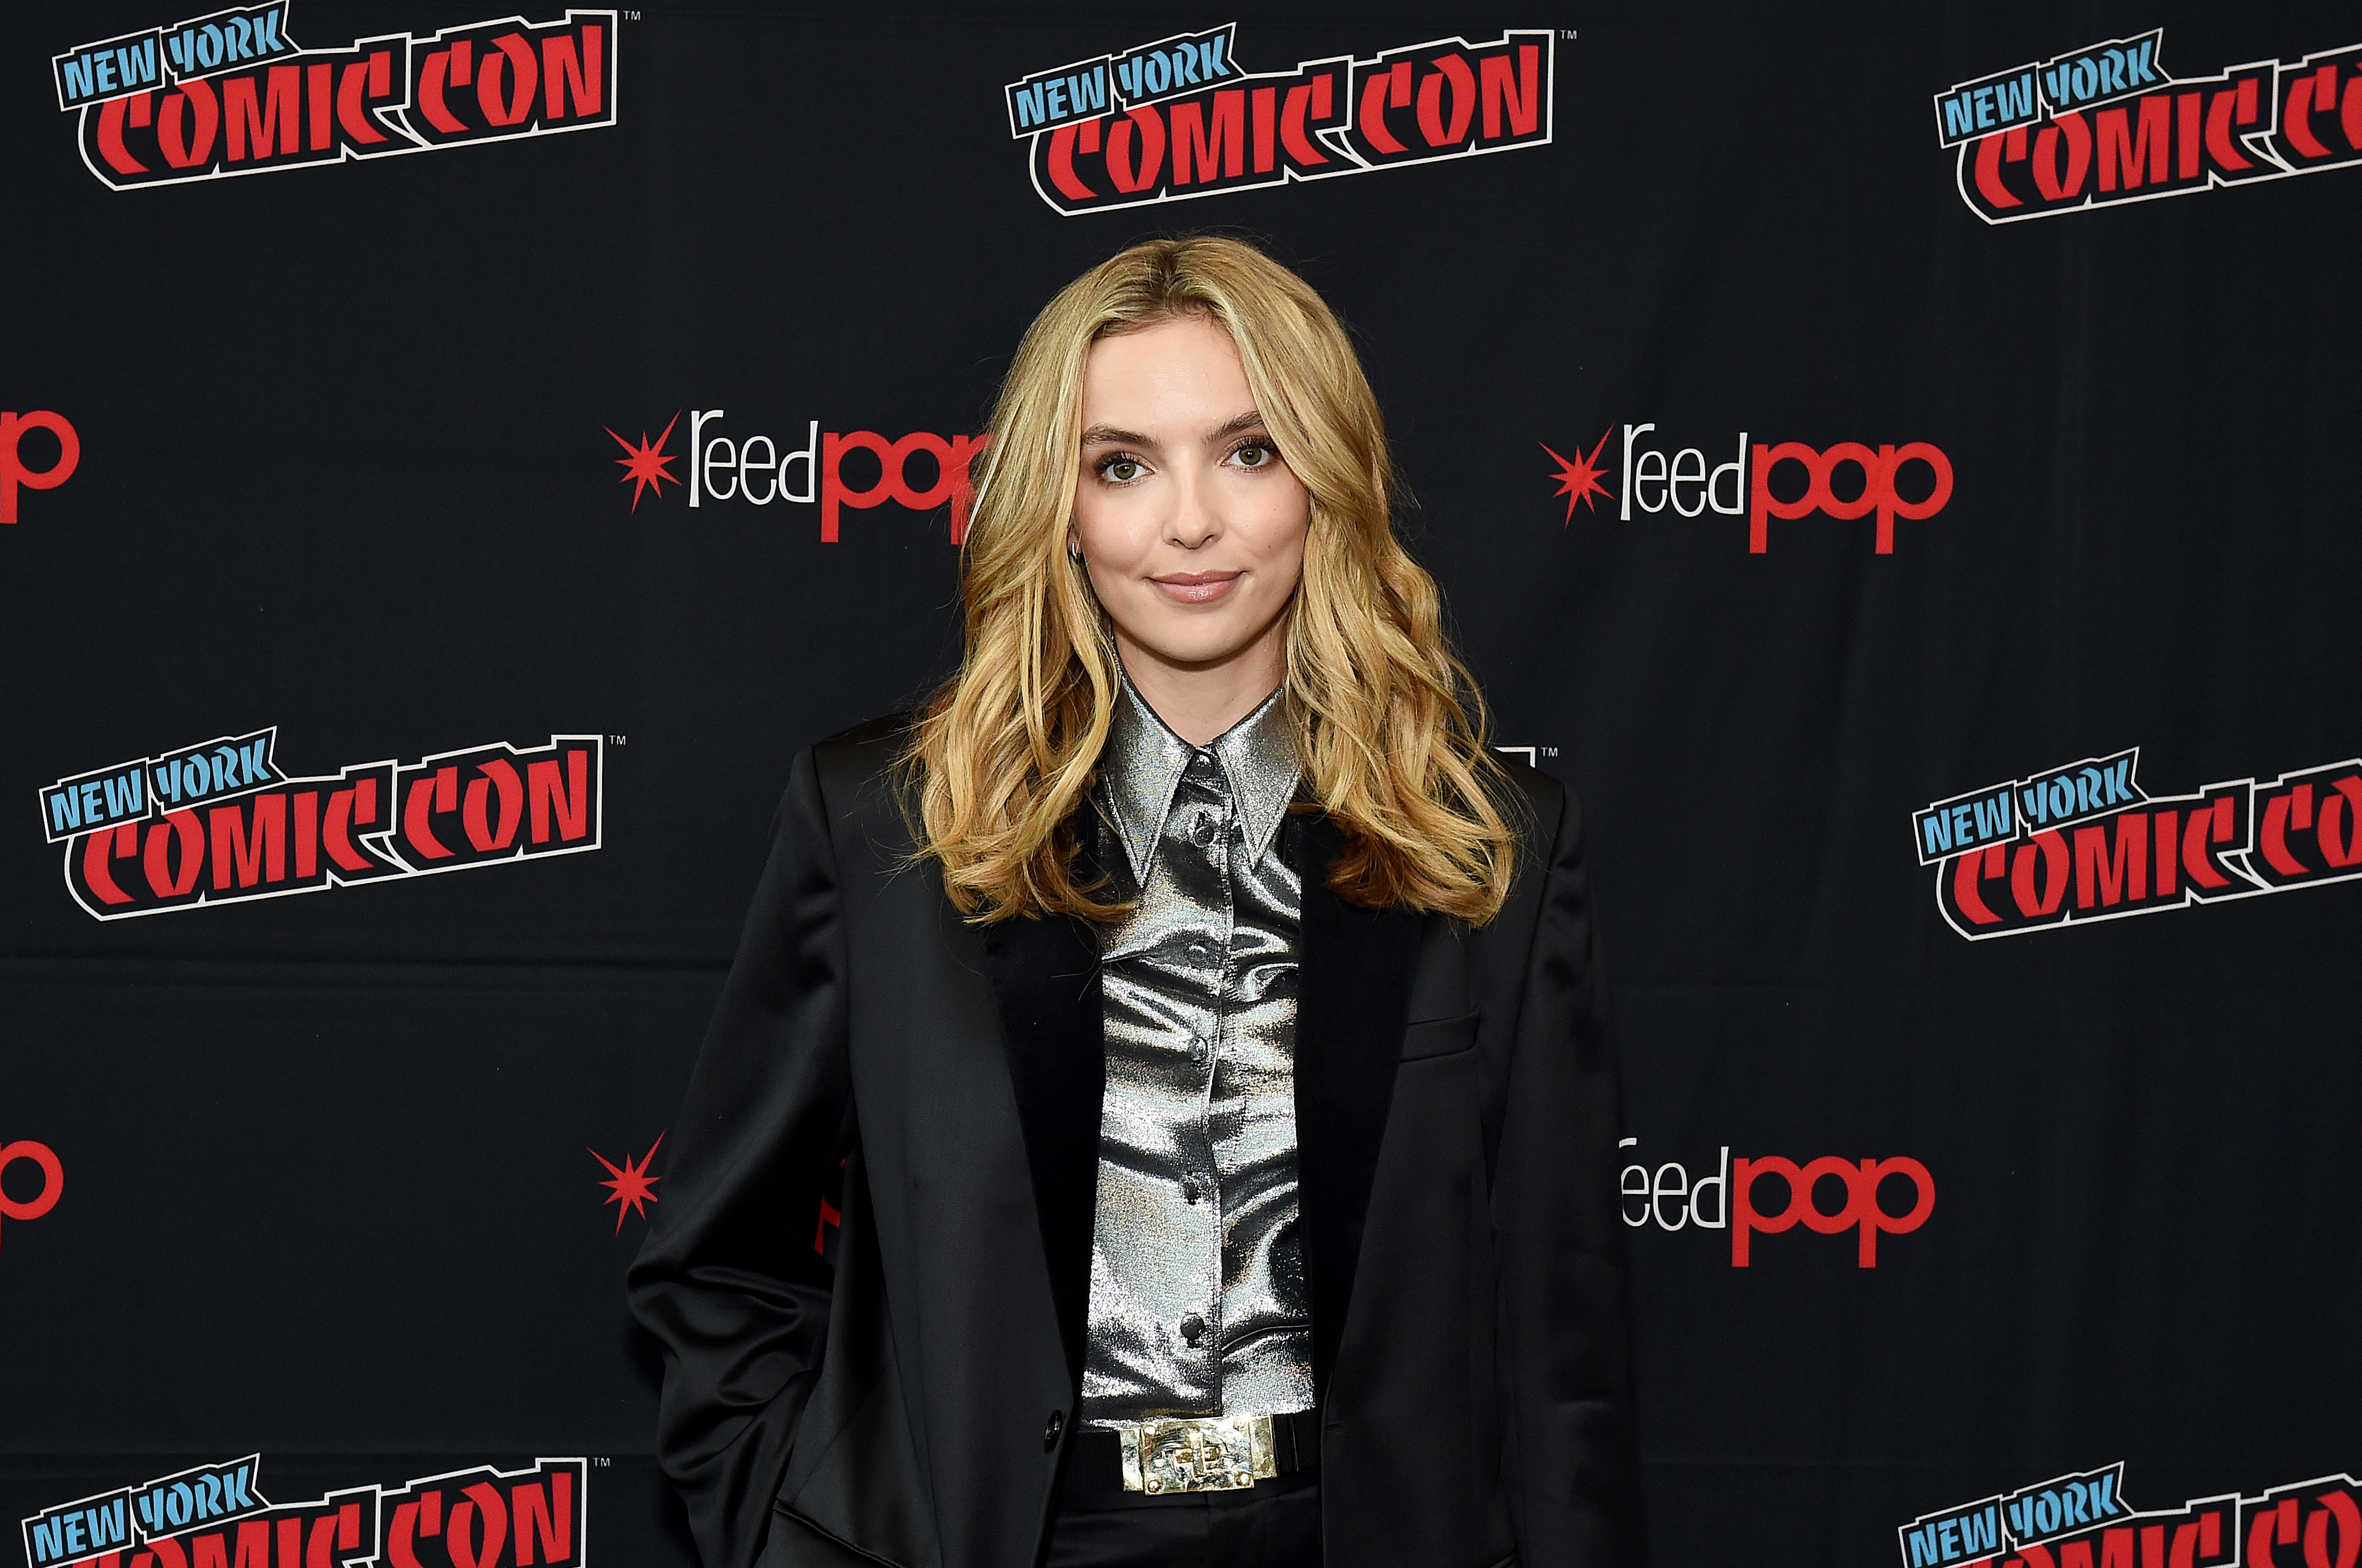 Jodie Comer at an event for Free Guy (2021)